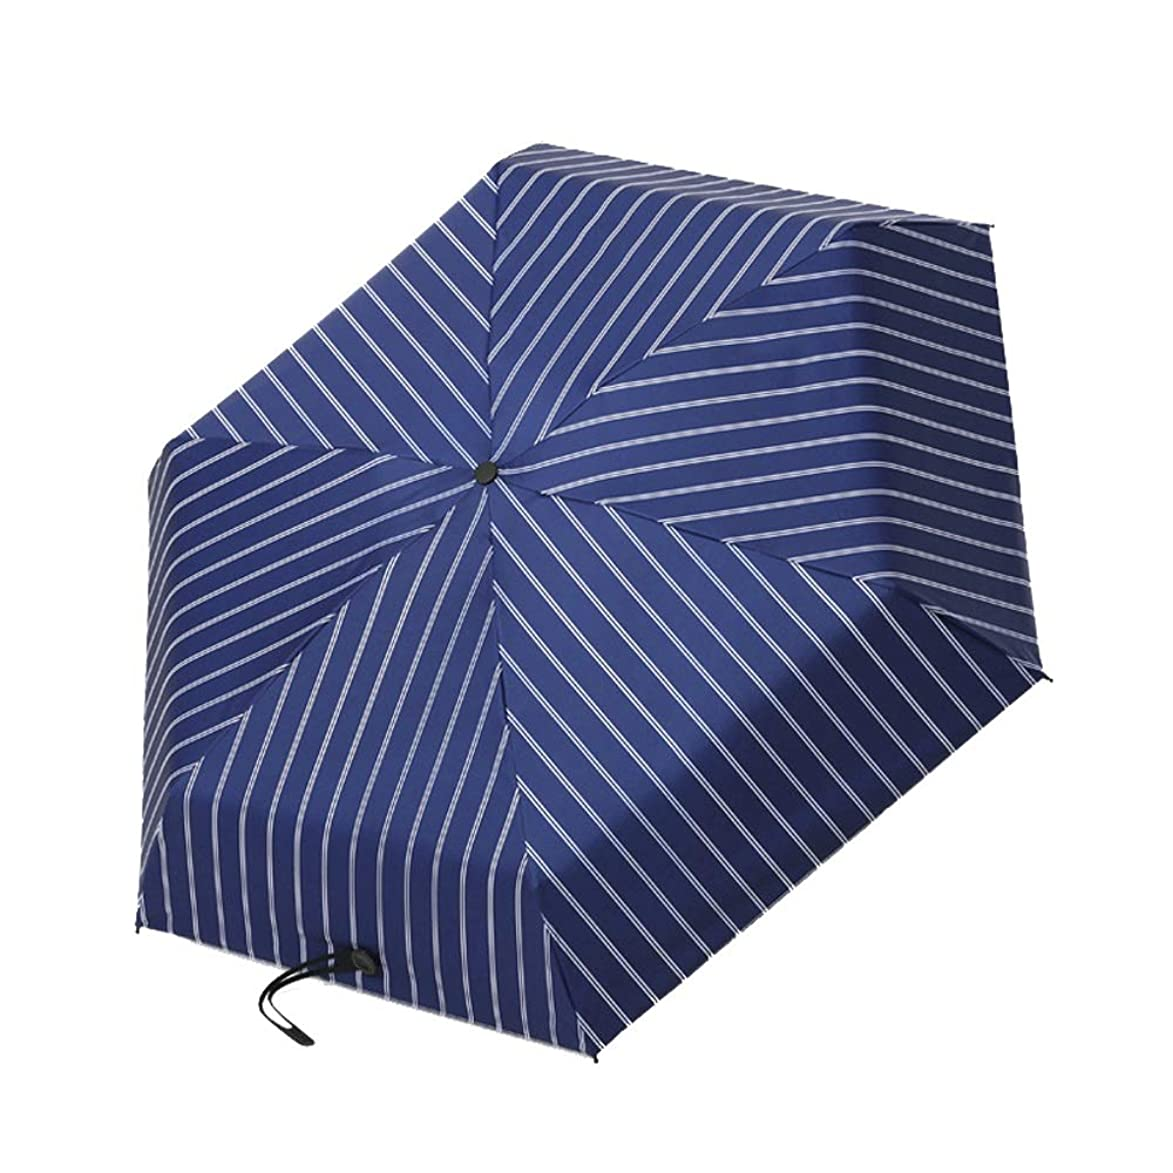 Solid Wood Handle Folding Umbrella,Portable Lightweight Outdoor Golf Umbrella,Strengthen The Portable Windproof Frame for Men and Women (Color : Blue)